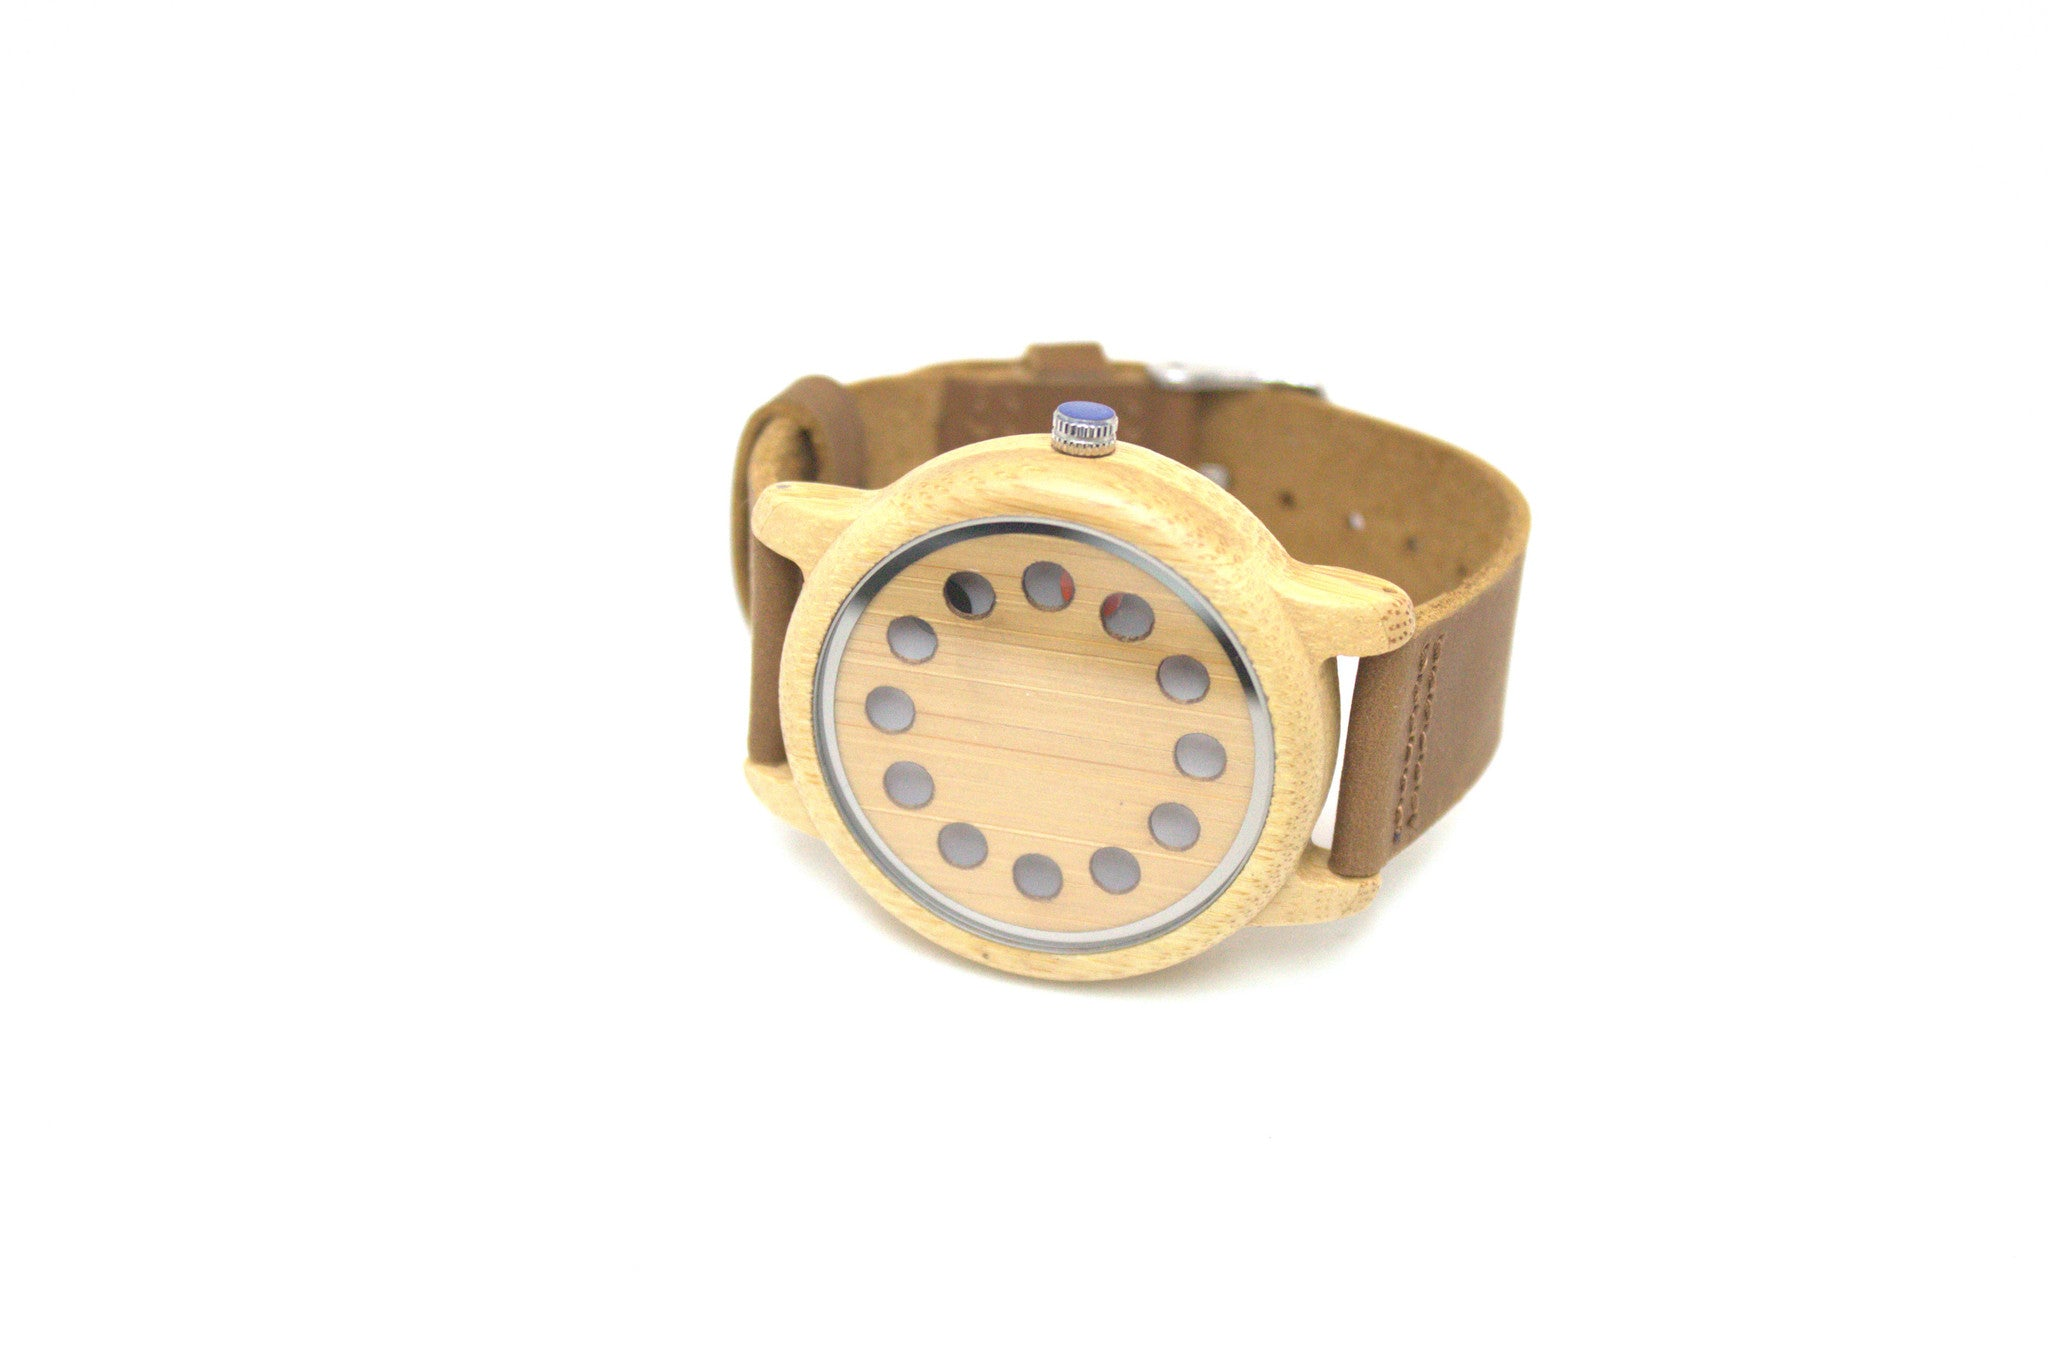 Bamboo Watch minimalist design leather strap